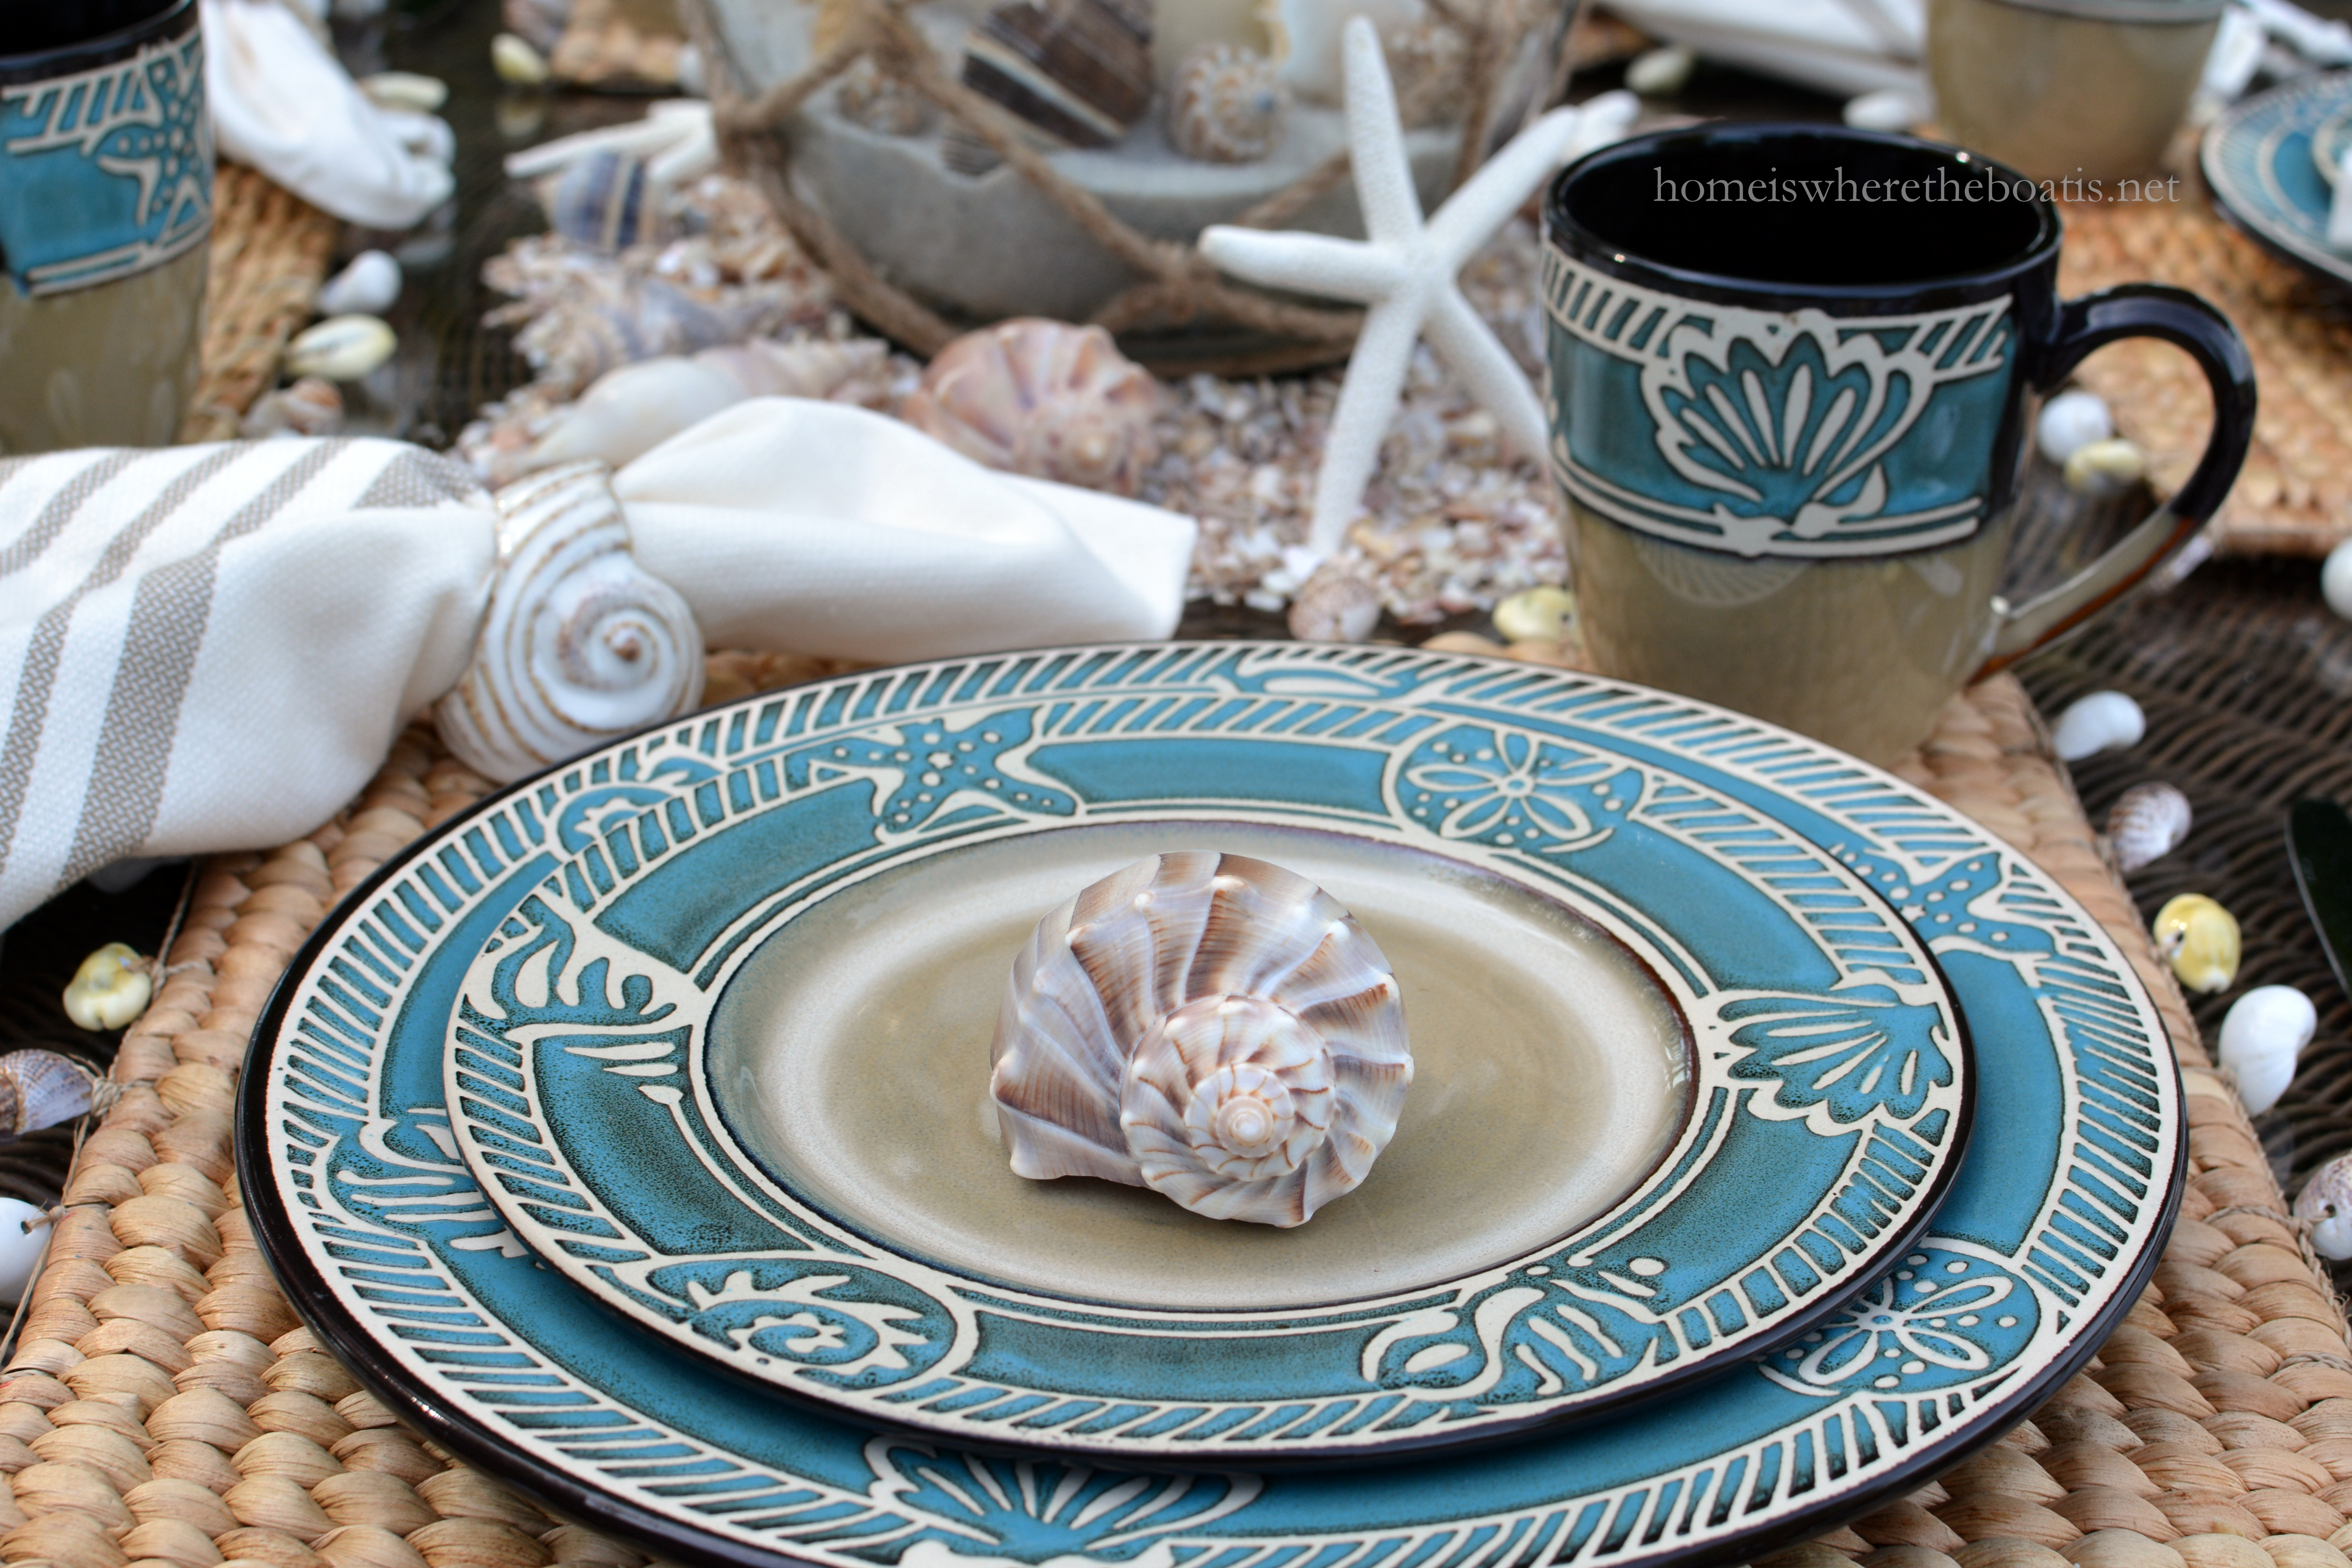 Happy Memorial Day! To kick off the unofficial start to summer I\u0027m taking you to the beach via the table and Pfaltzgraff Montego Dinnerware! & Beach-themed Table for Summer with Pfaltzgraff Montego \u2013 Home is ...